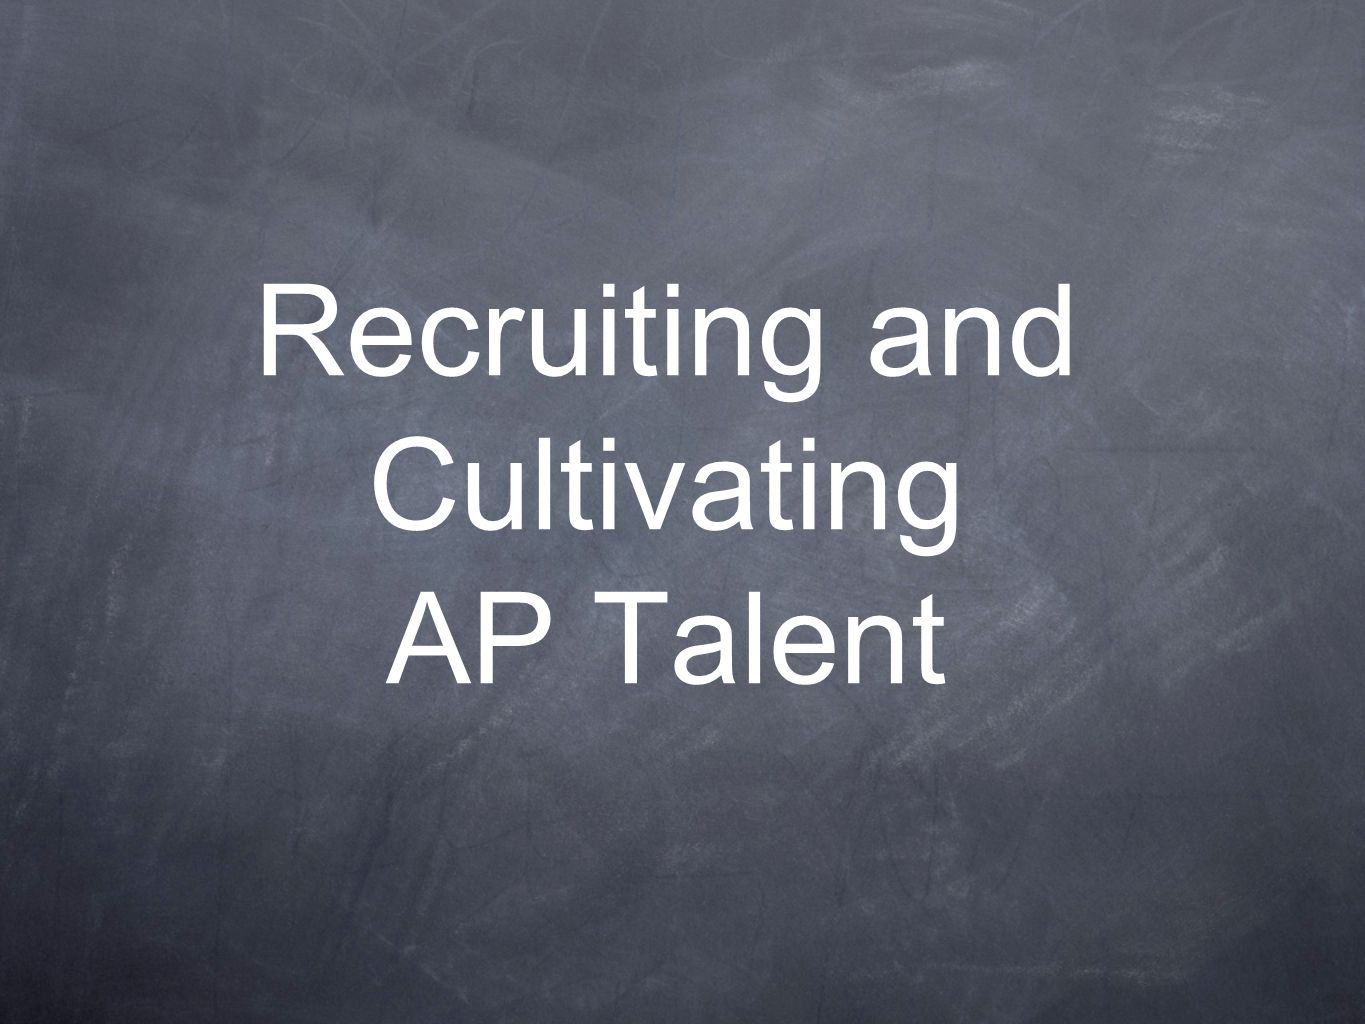 Recruiting and Cultivating AP Talent